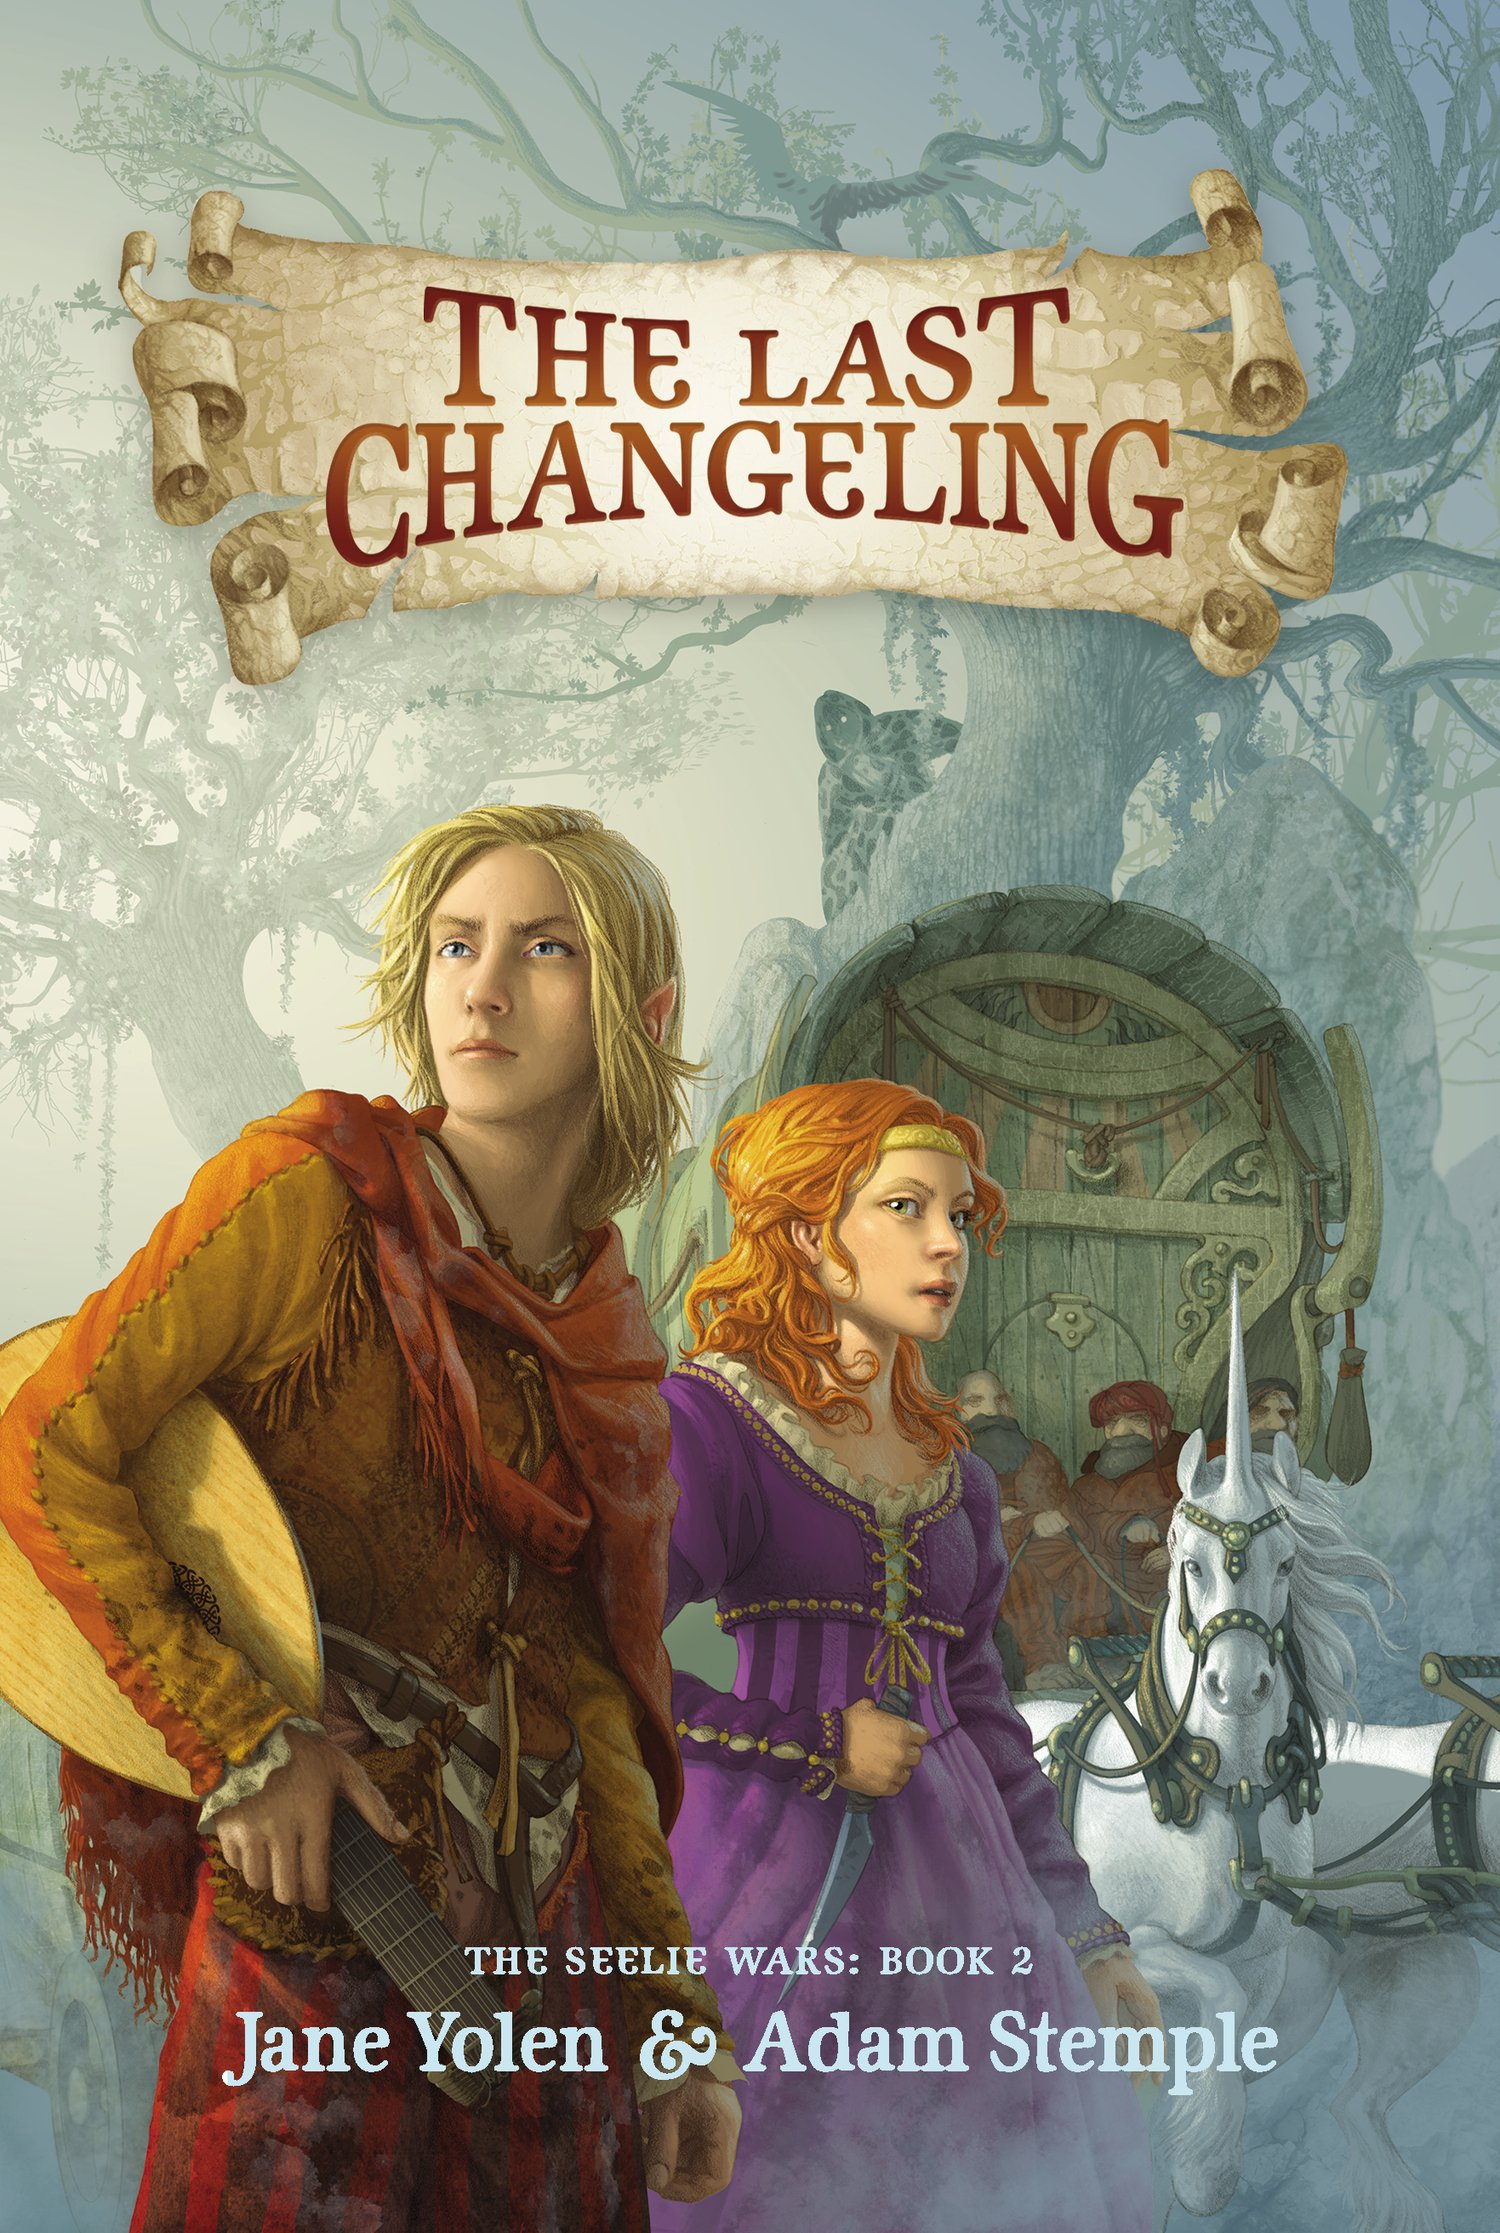 The Last Changeling (The Seelie Wars)